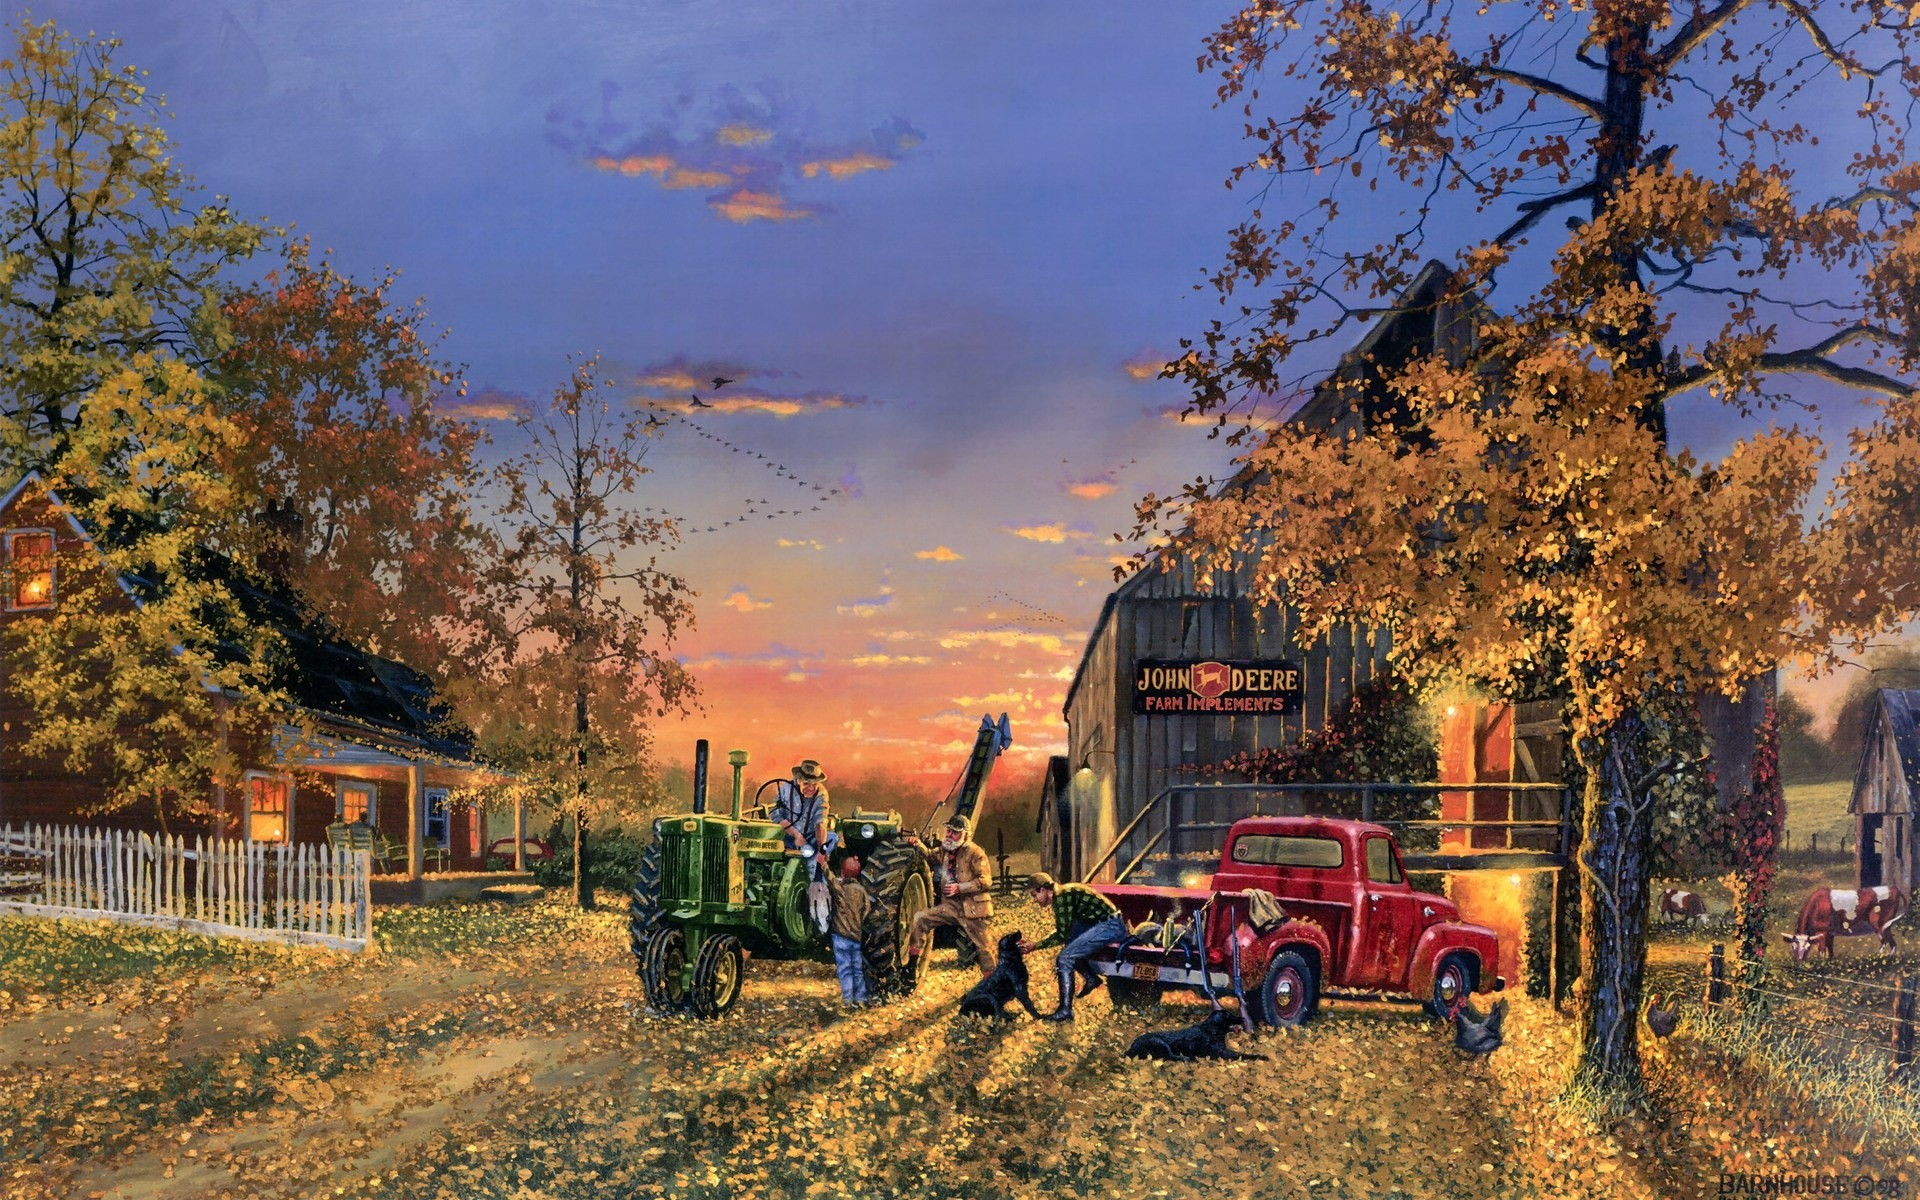 Res: 1920x1200, tablet backgrounds,drawing, people, landscapes, humor background images,  paintings, country, artistic, iphone, autumn, vehicles, thanksgiving, fall,  ...